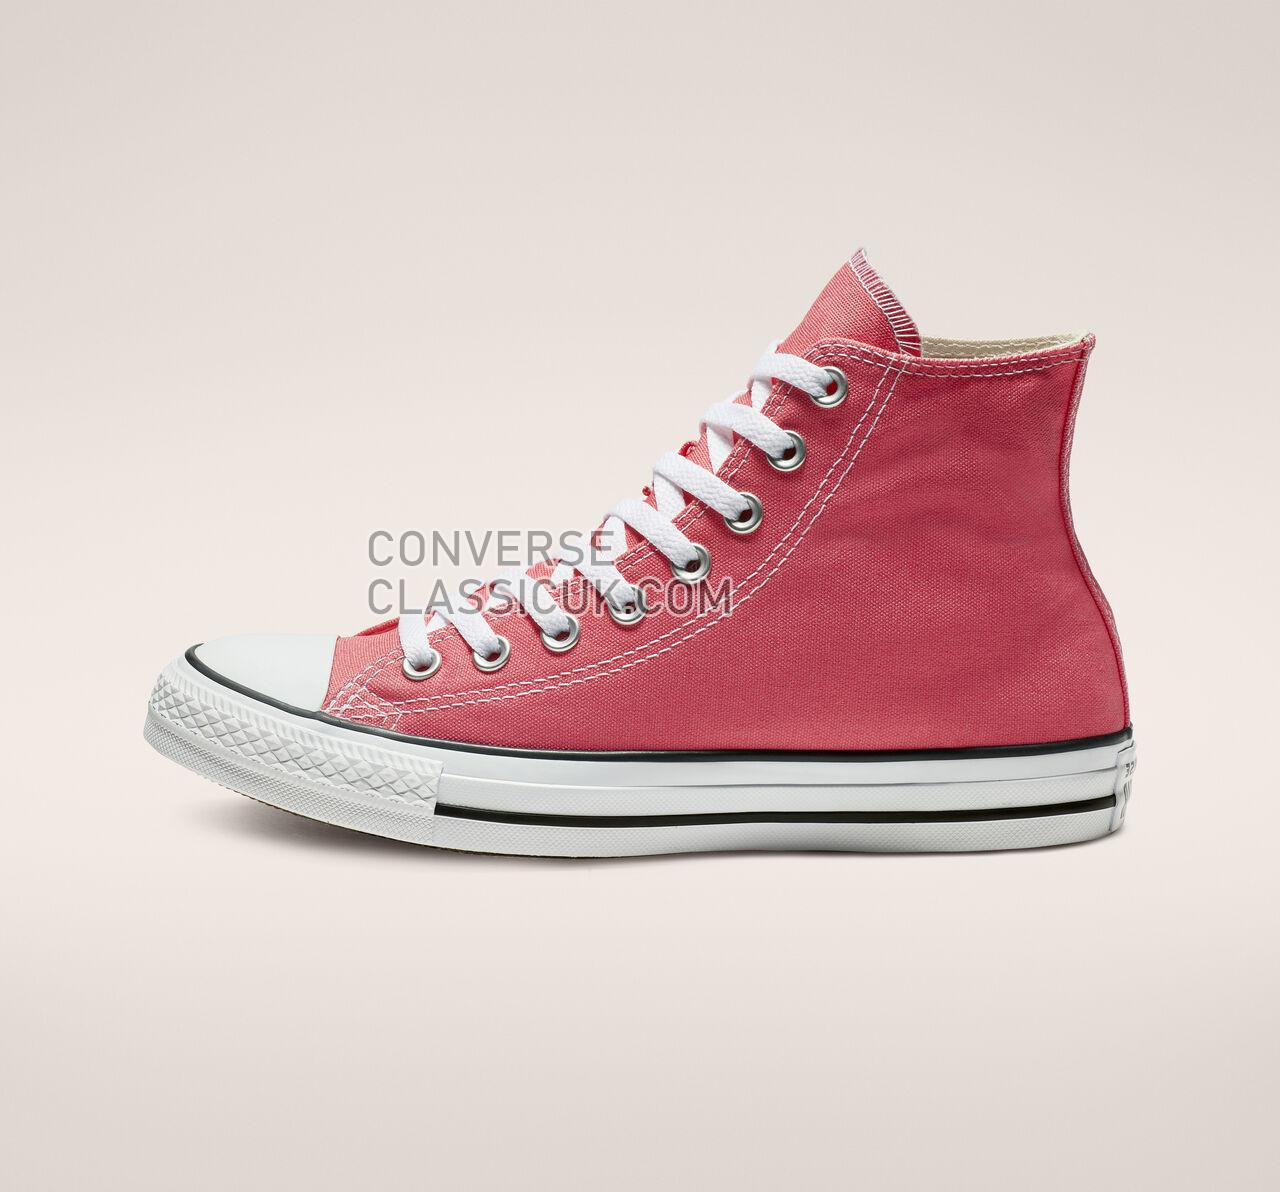 Converse Chuck Taylor All Star Seasonal Color High Top Mens Womens Unisex 161417F Punch Coral Shoes